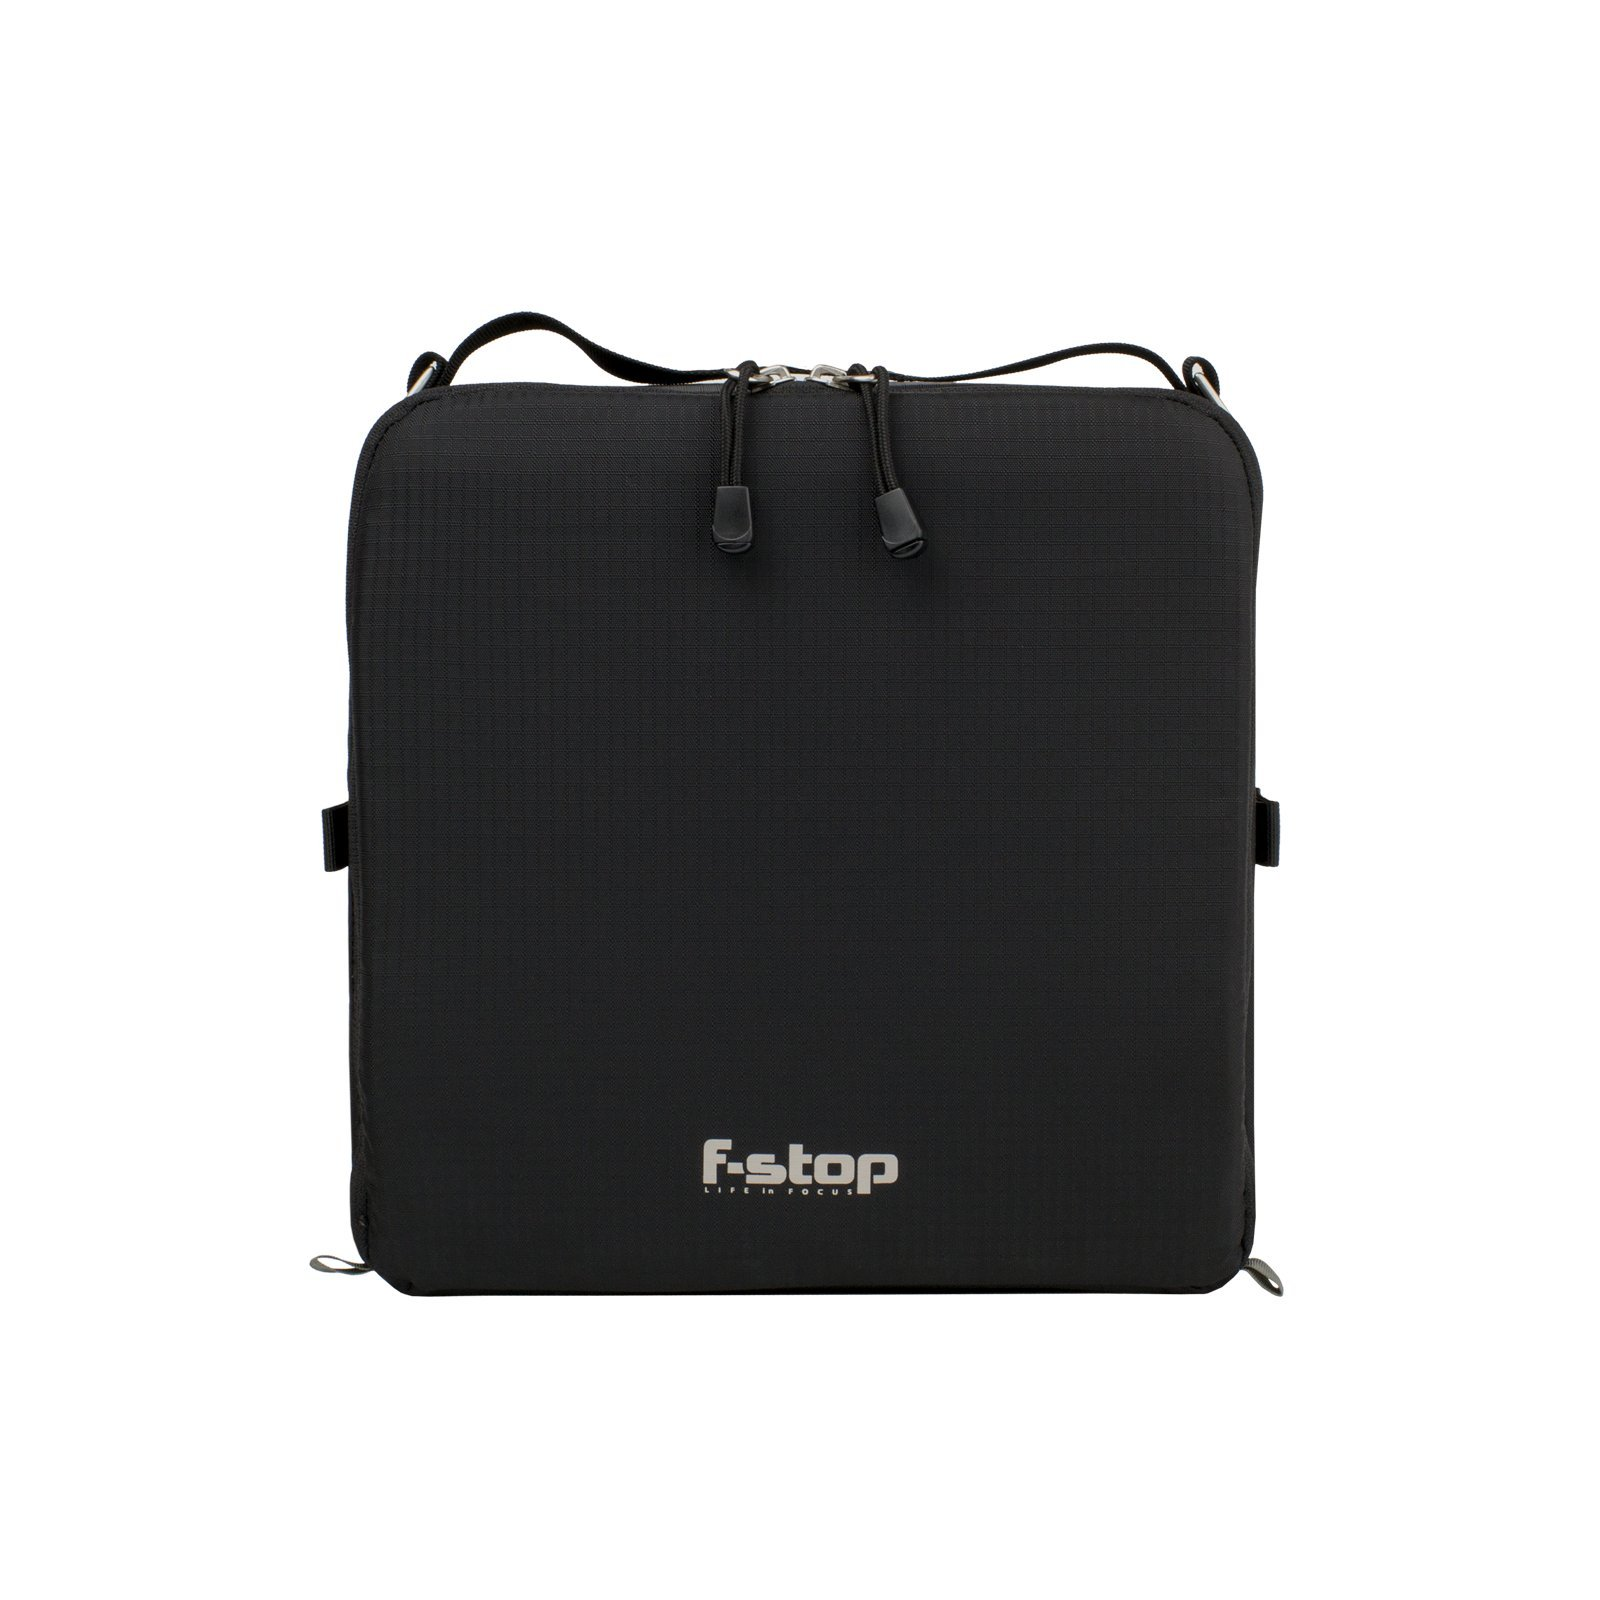 f-stop - Medium Slope ICU (Internal Camera Unit - 5''D Top 7''D Bottom x 11.5''W x 11''H) Protection Storage Carry Solution for Mirrorless, DSLR, Multiple Lens Kit, Gripped Bodies